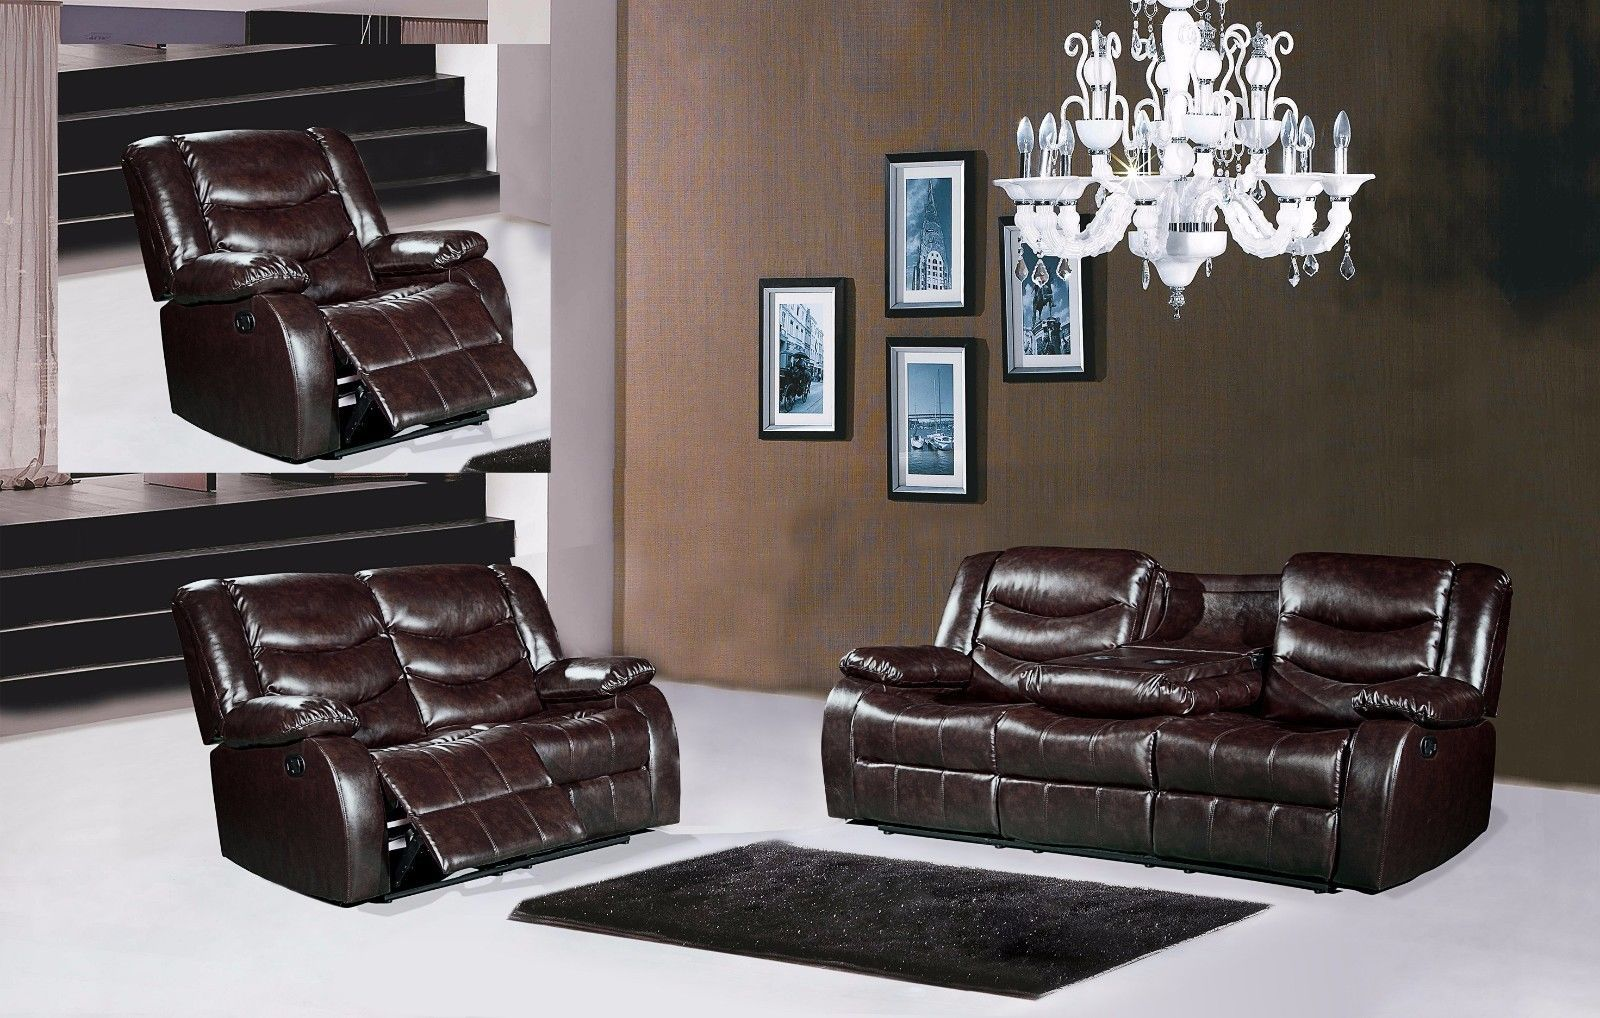 Meridian 644 Bonded Leather Living Room Sofa Set 2pc. Brown Contemporary Style